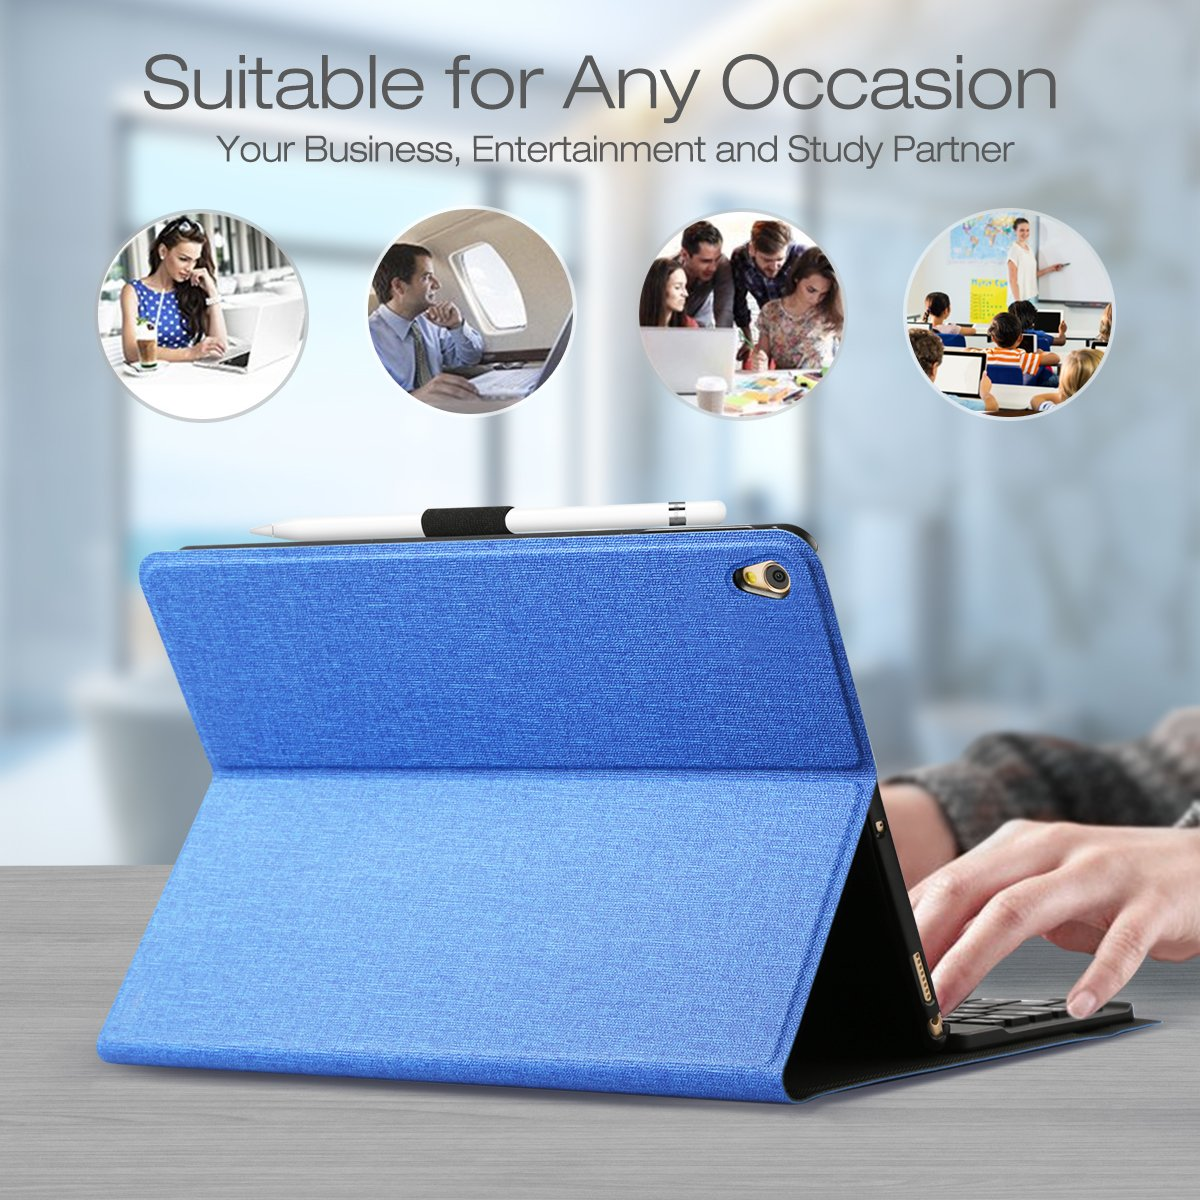 AntArt 10.5 Leather case + Wireless Bluetooth American English ABS Brushed Keyboard for iOS, Android Windows by AntArt (Image #6)